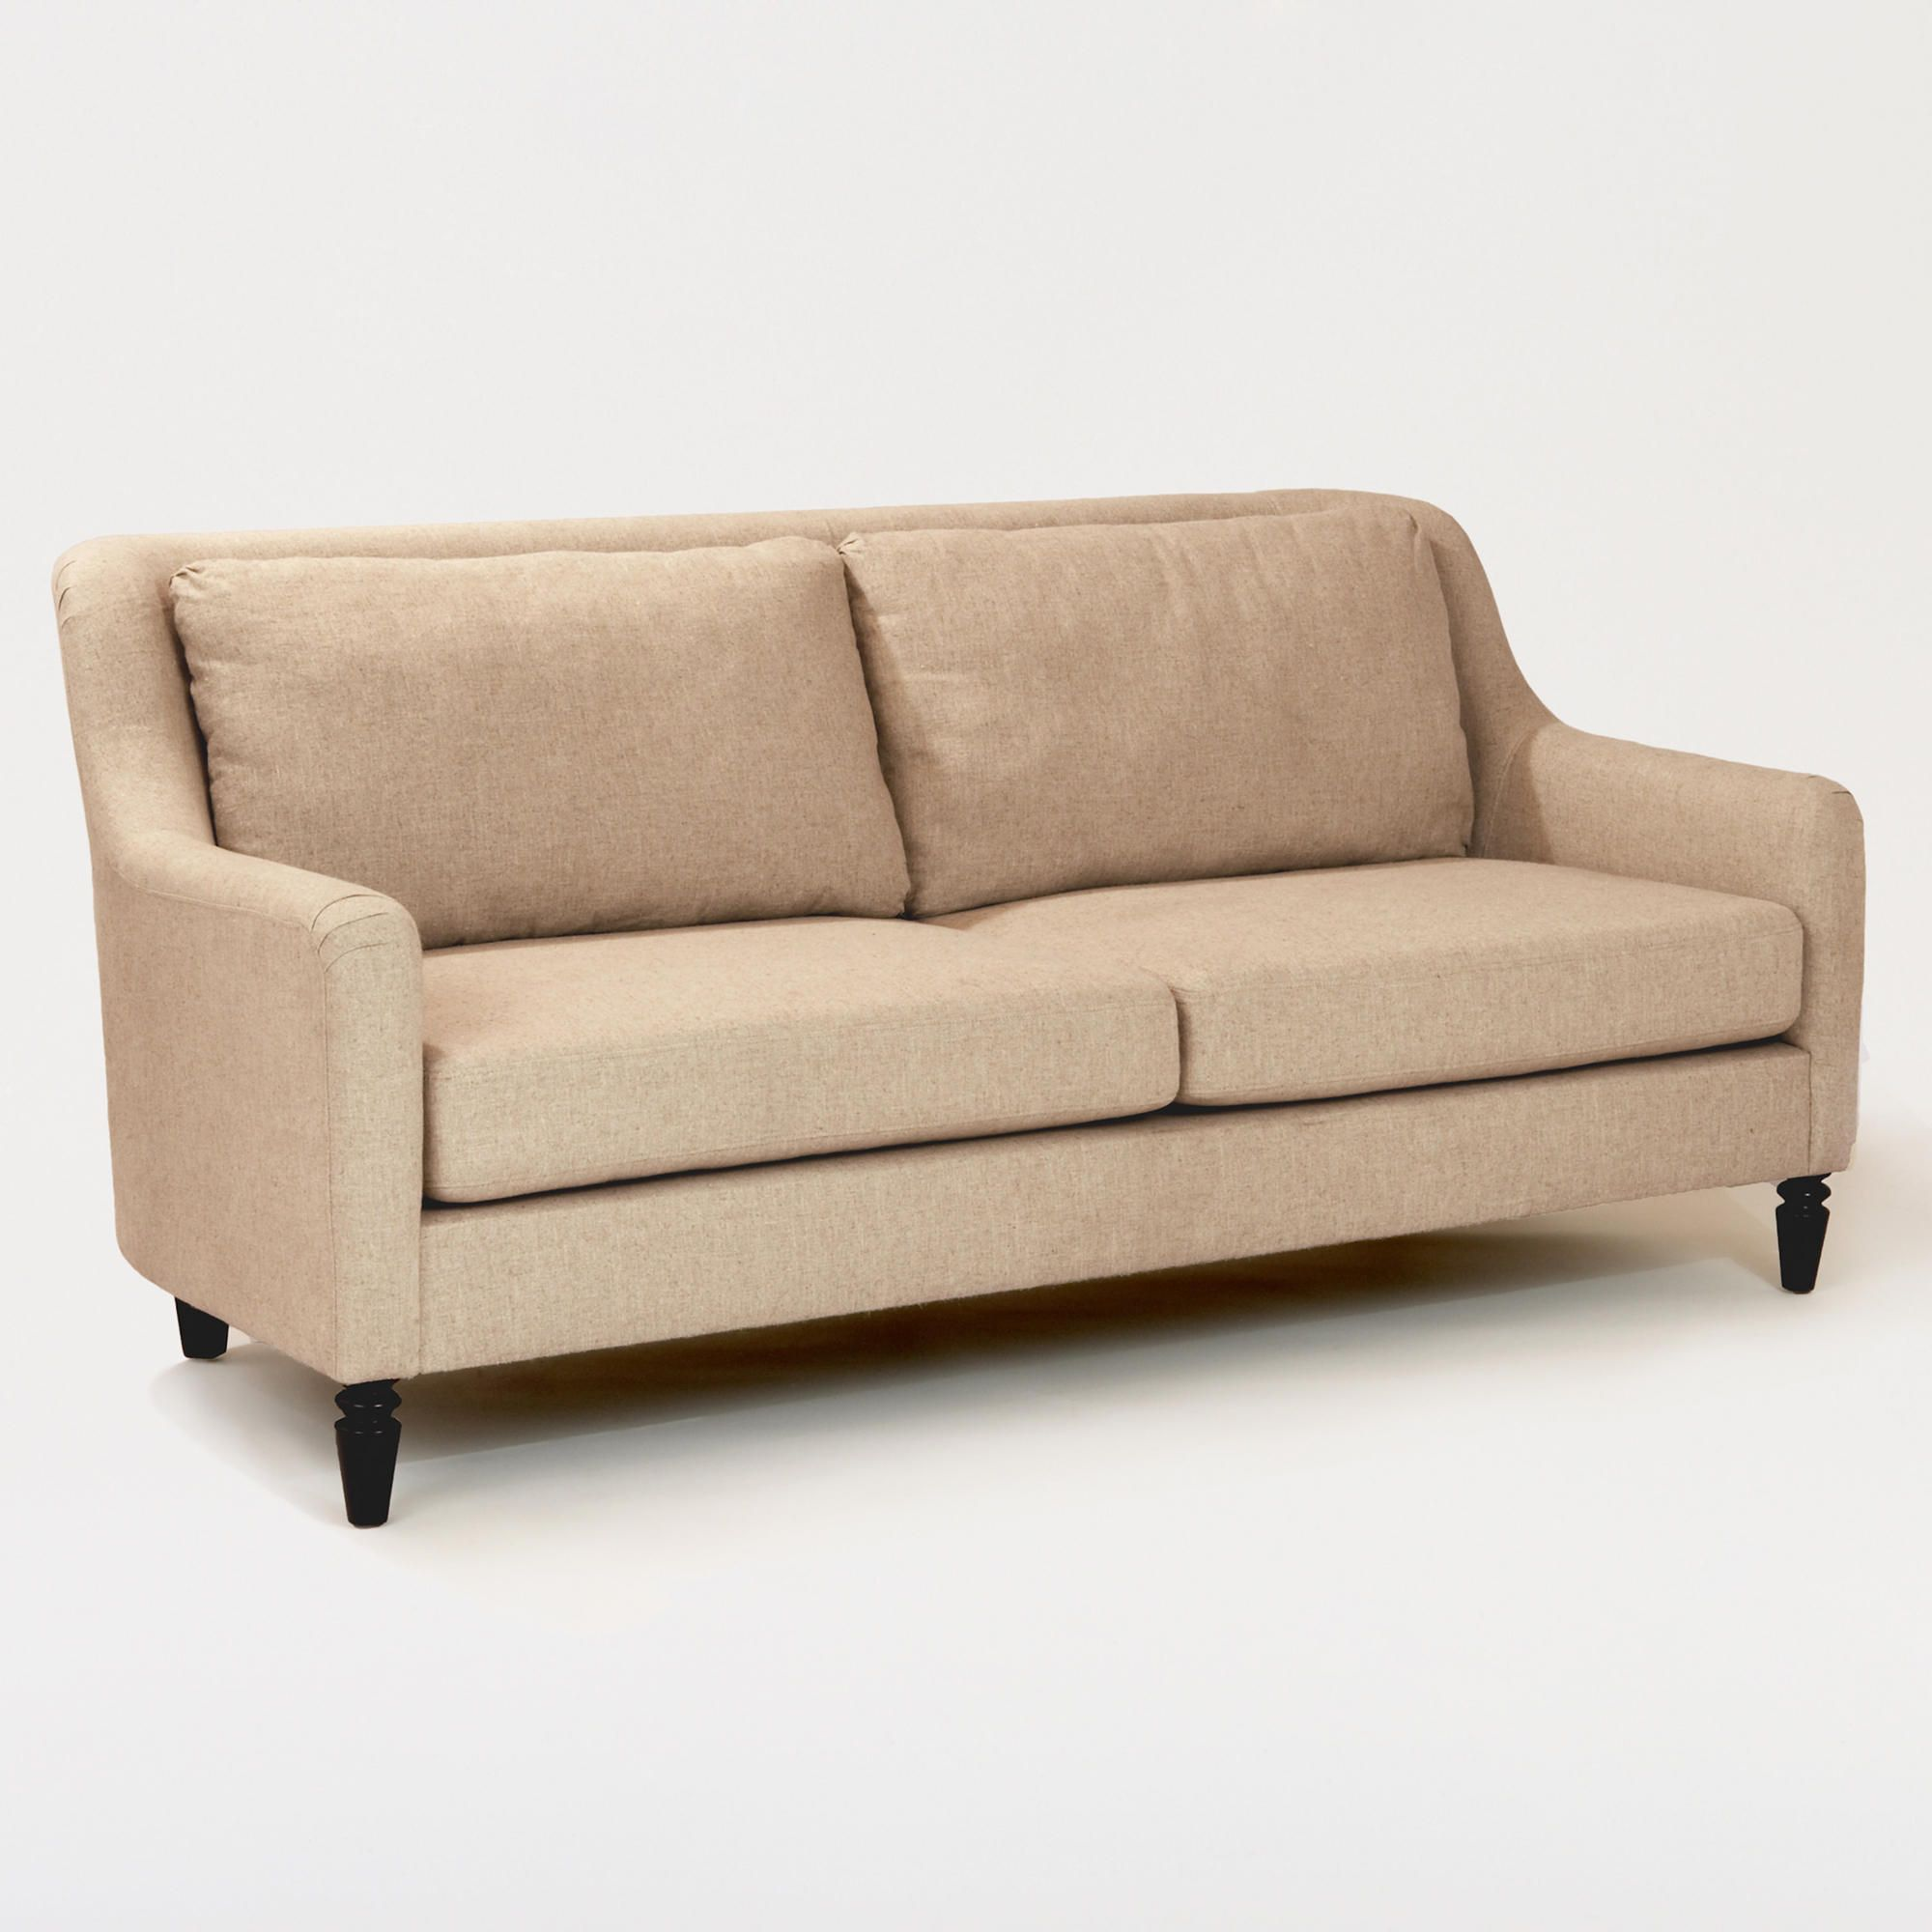 World Market Kendall Sofa And Ottoman Furniture Used Furniture